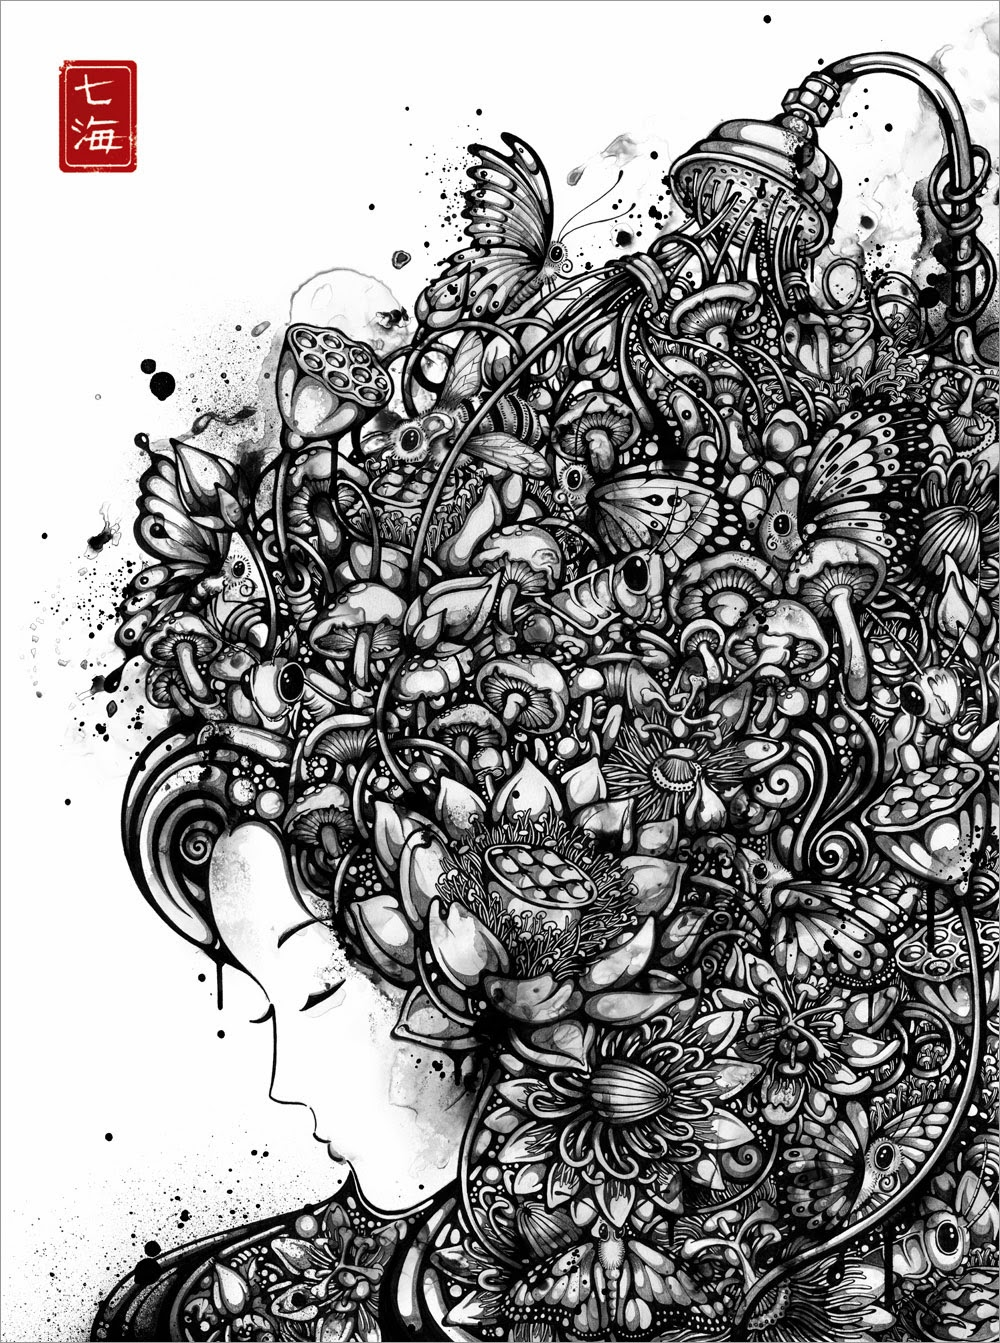 04-Flower-Shower-Nanami-Cowdroy-Splashes-of-Ink-Drawings-www-designstack-co